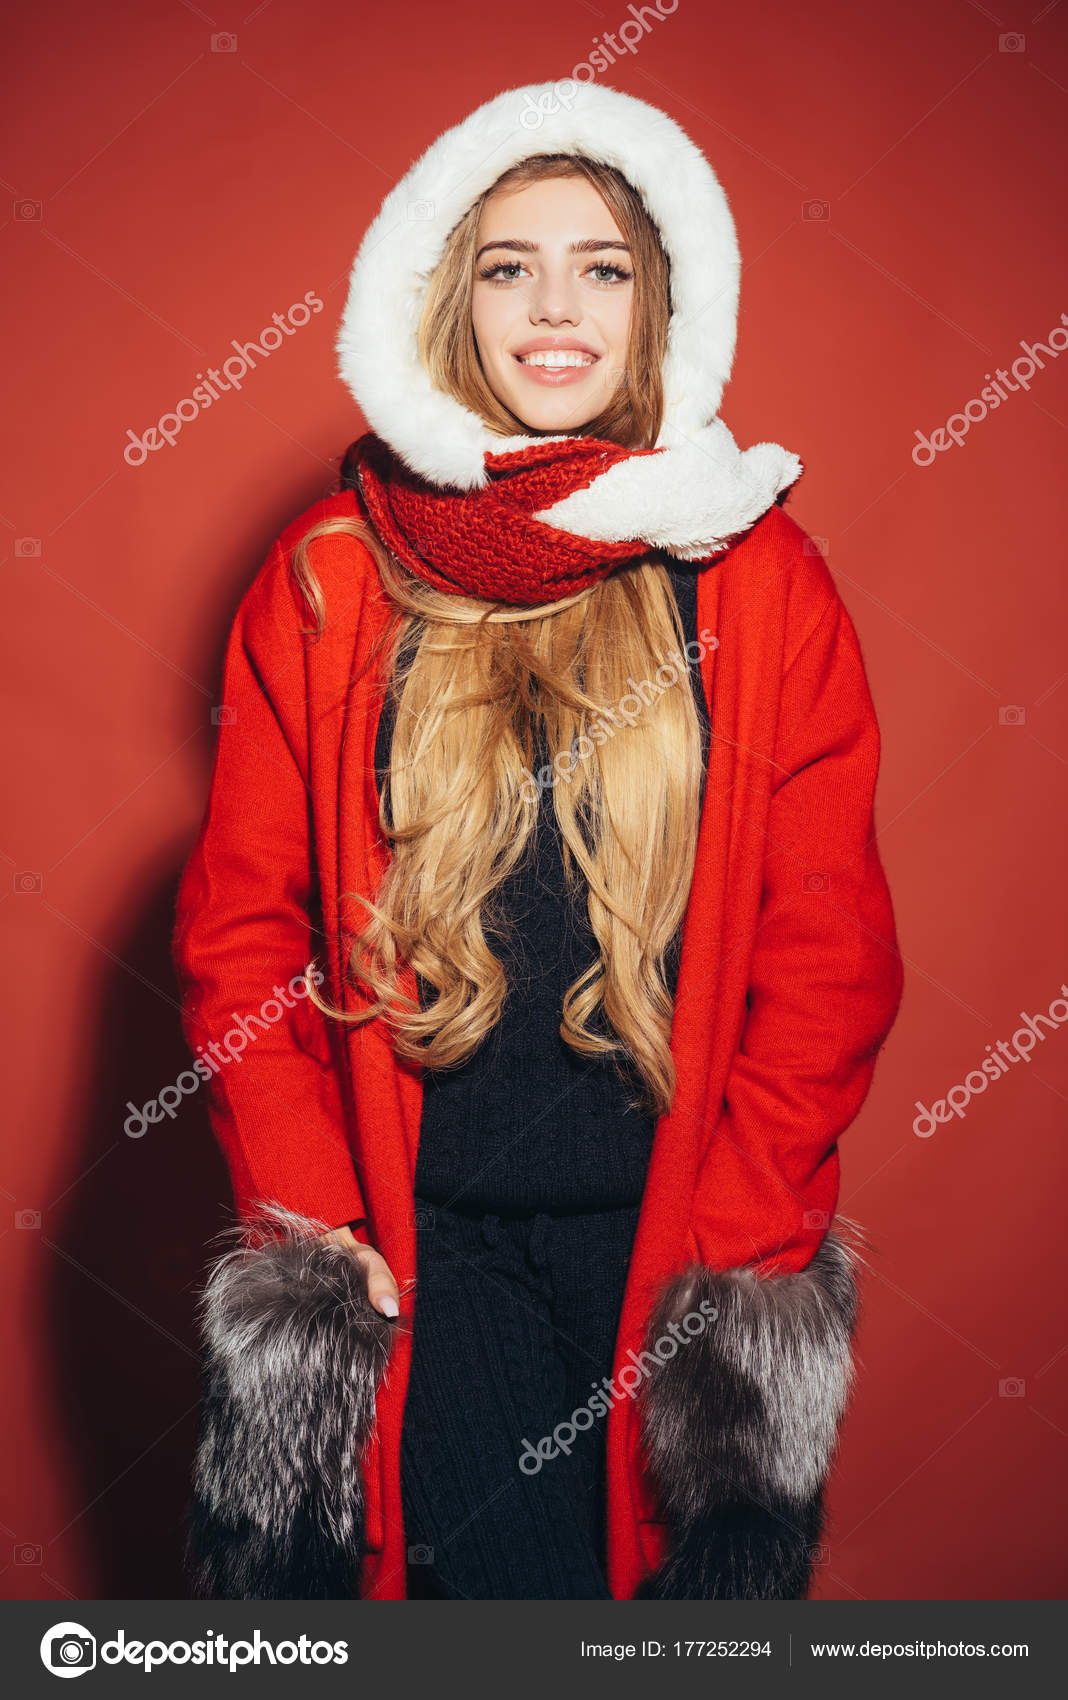 b807c9c7df Woman in santa costume with pretty face. Christmas woman in red hat. Xmas  party and winter holiday. Happy girl celebrate new year on red background.